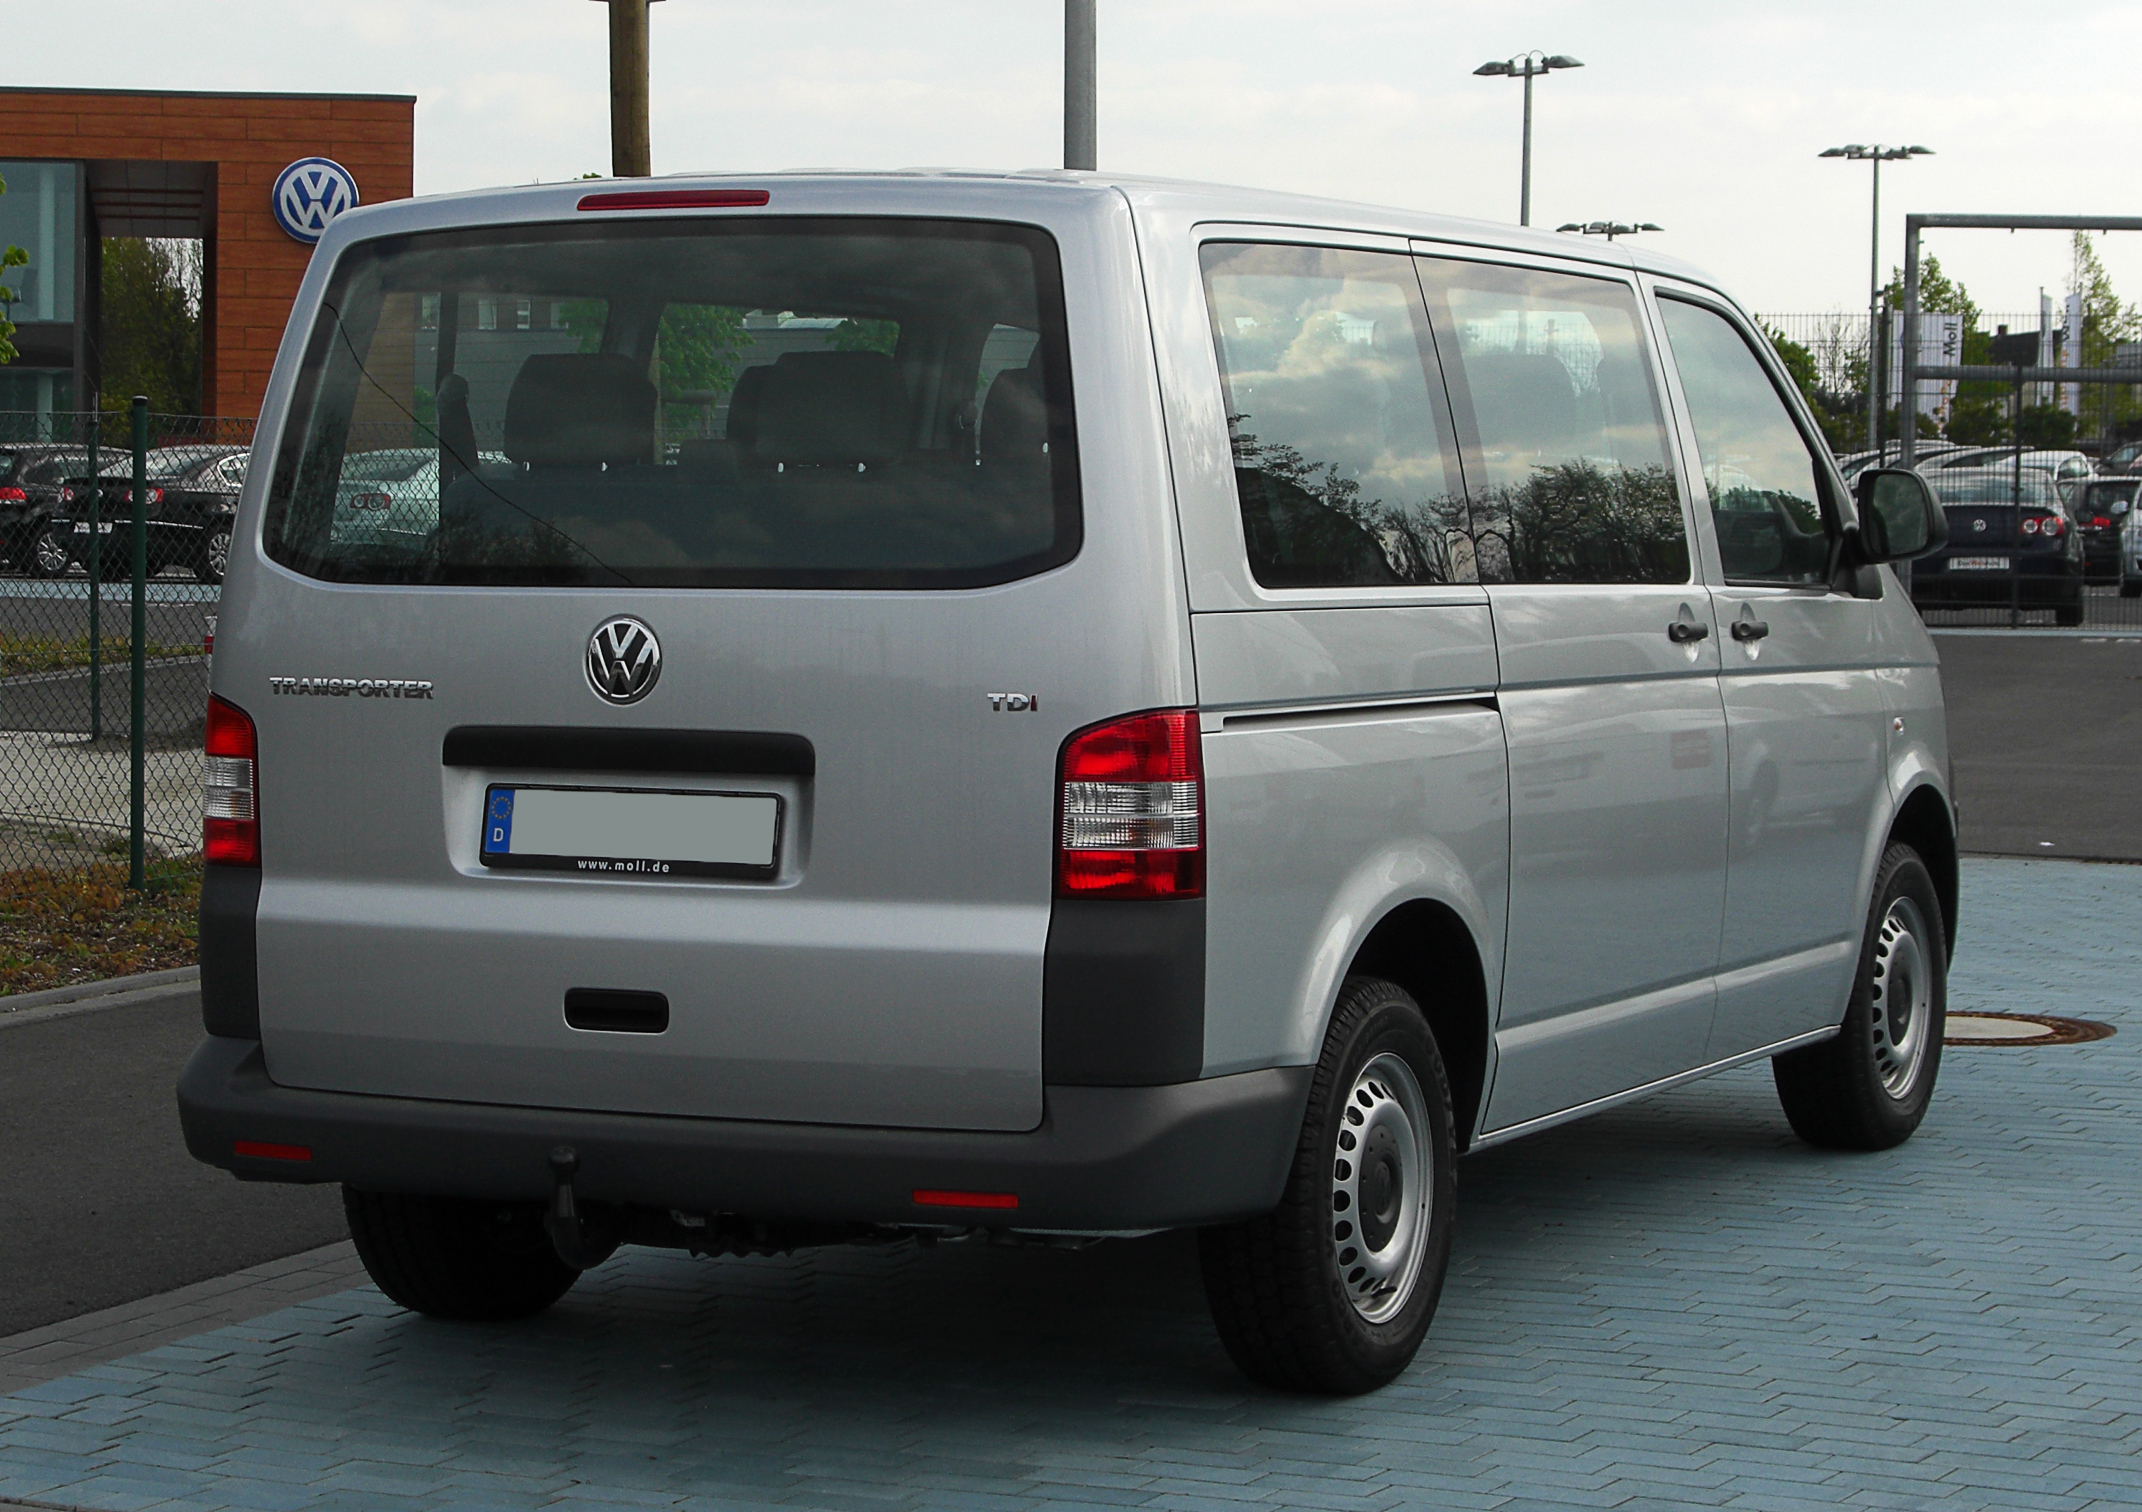 file vw transporter kombi 2 0 tdi t5 facelift heckansicht 17 april 2011 d. Black Bedroom Furniture Sets. Home Design Ideas